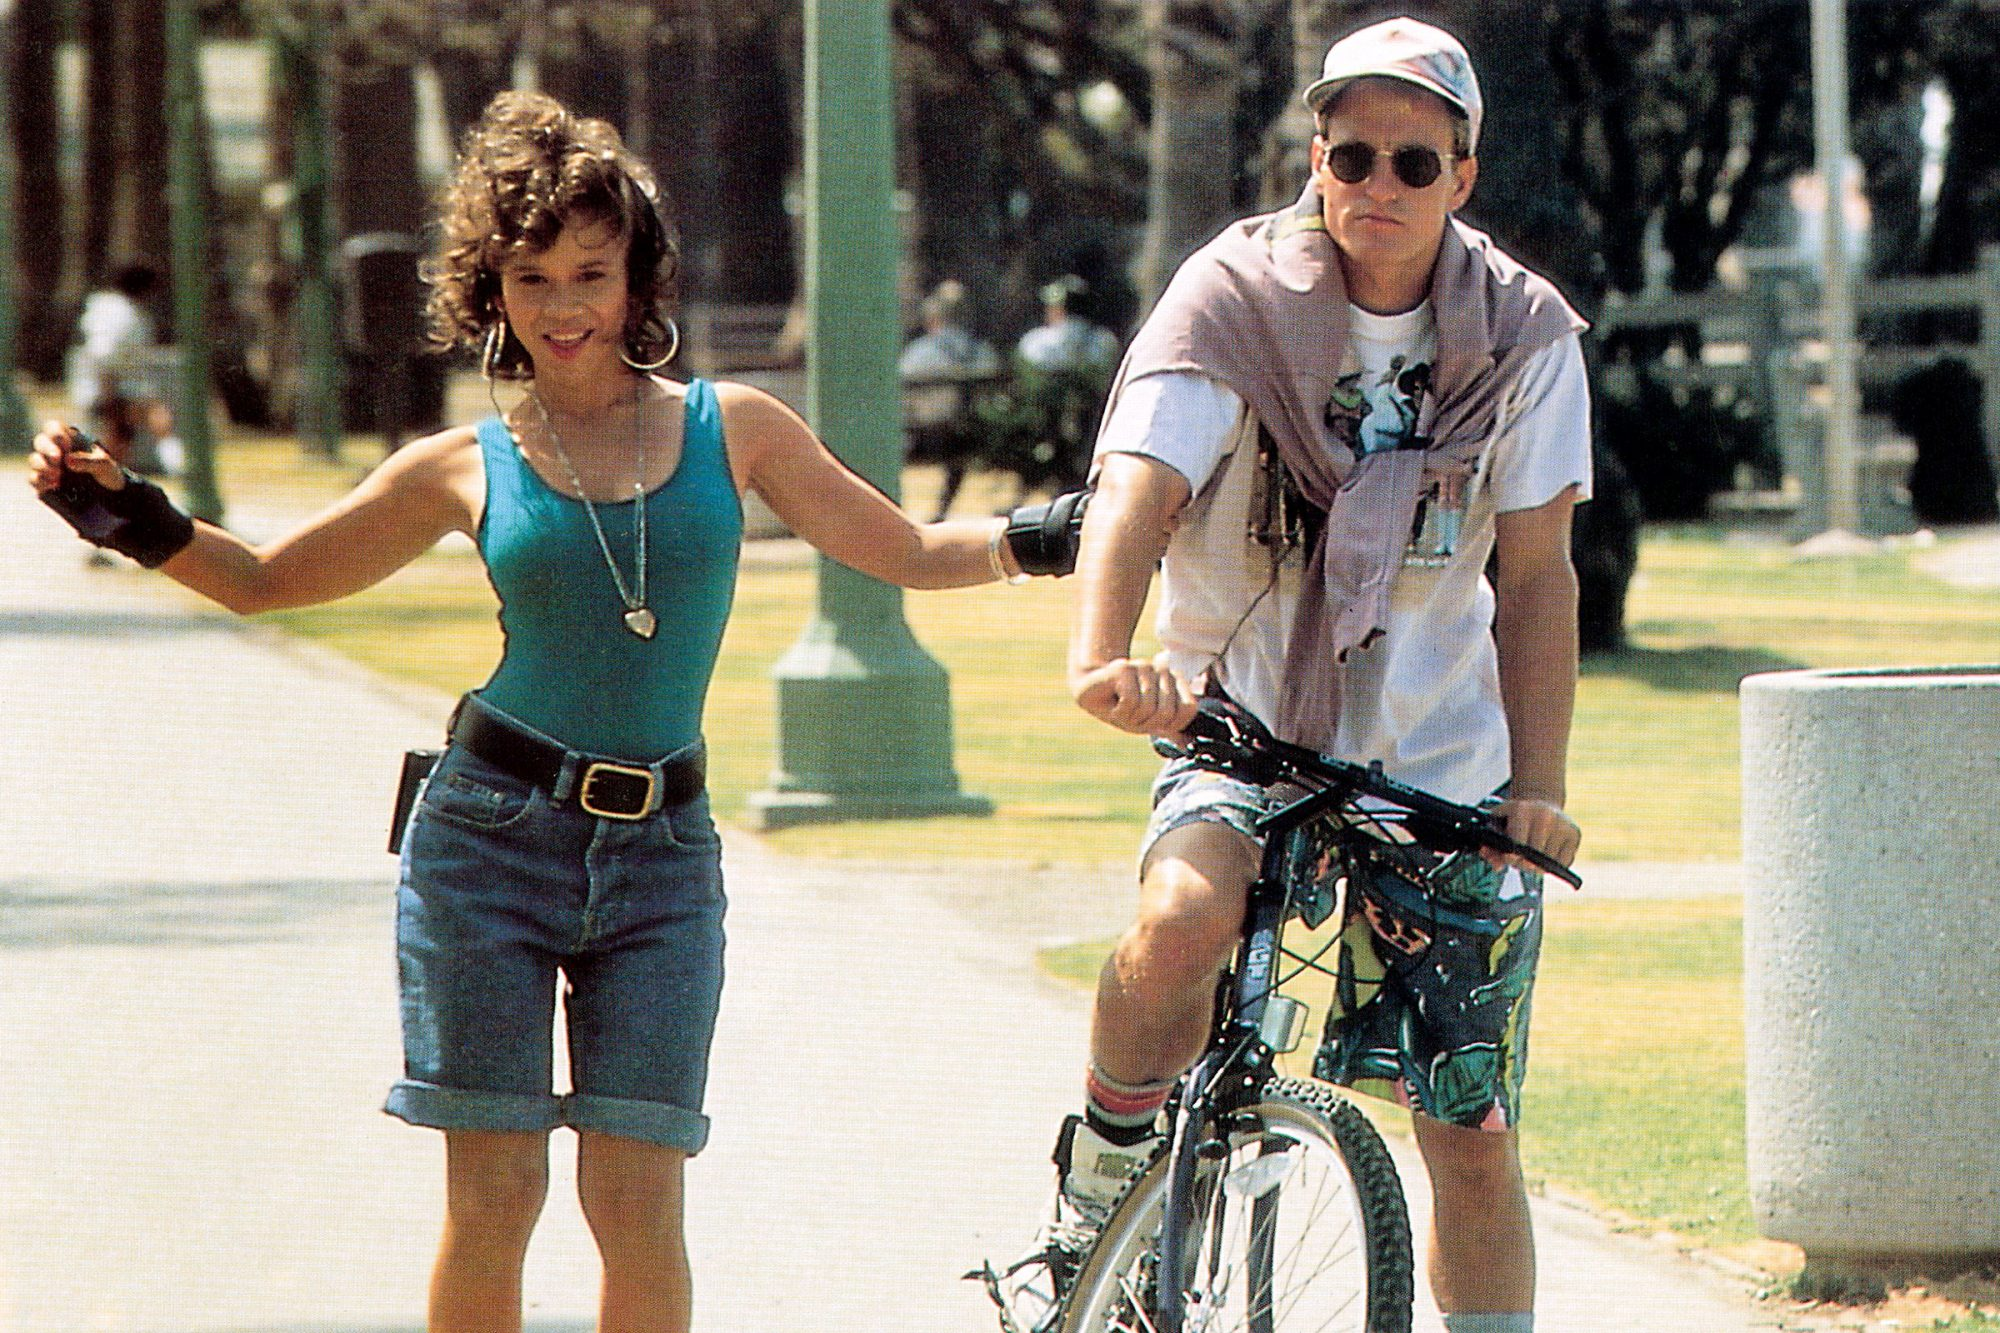 WHITE MEN CAN'T JUMP, from left: Rosie Perez, Woody Harrelson, 1992, TM & Copyright © 20th Century F